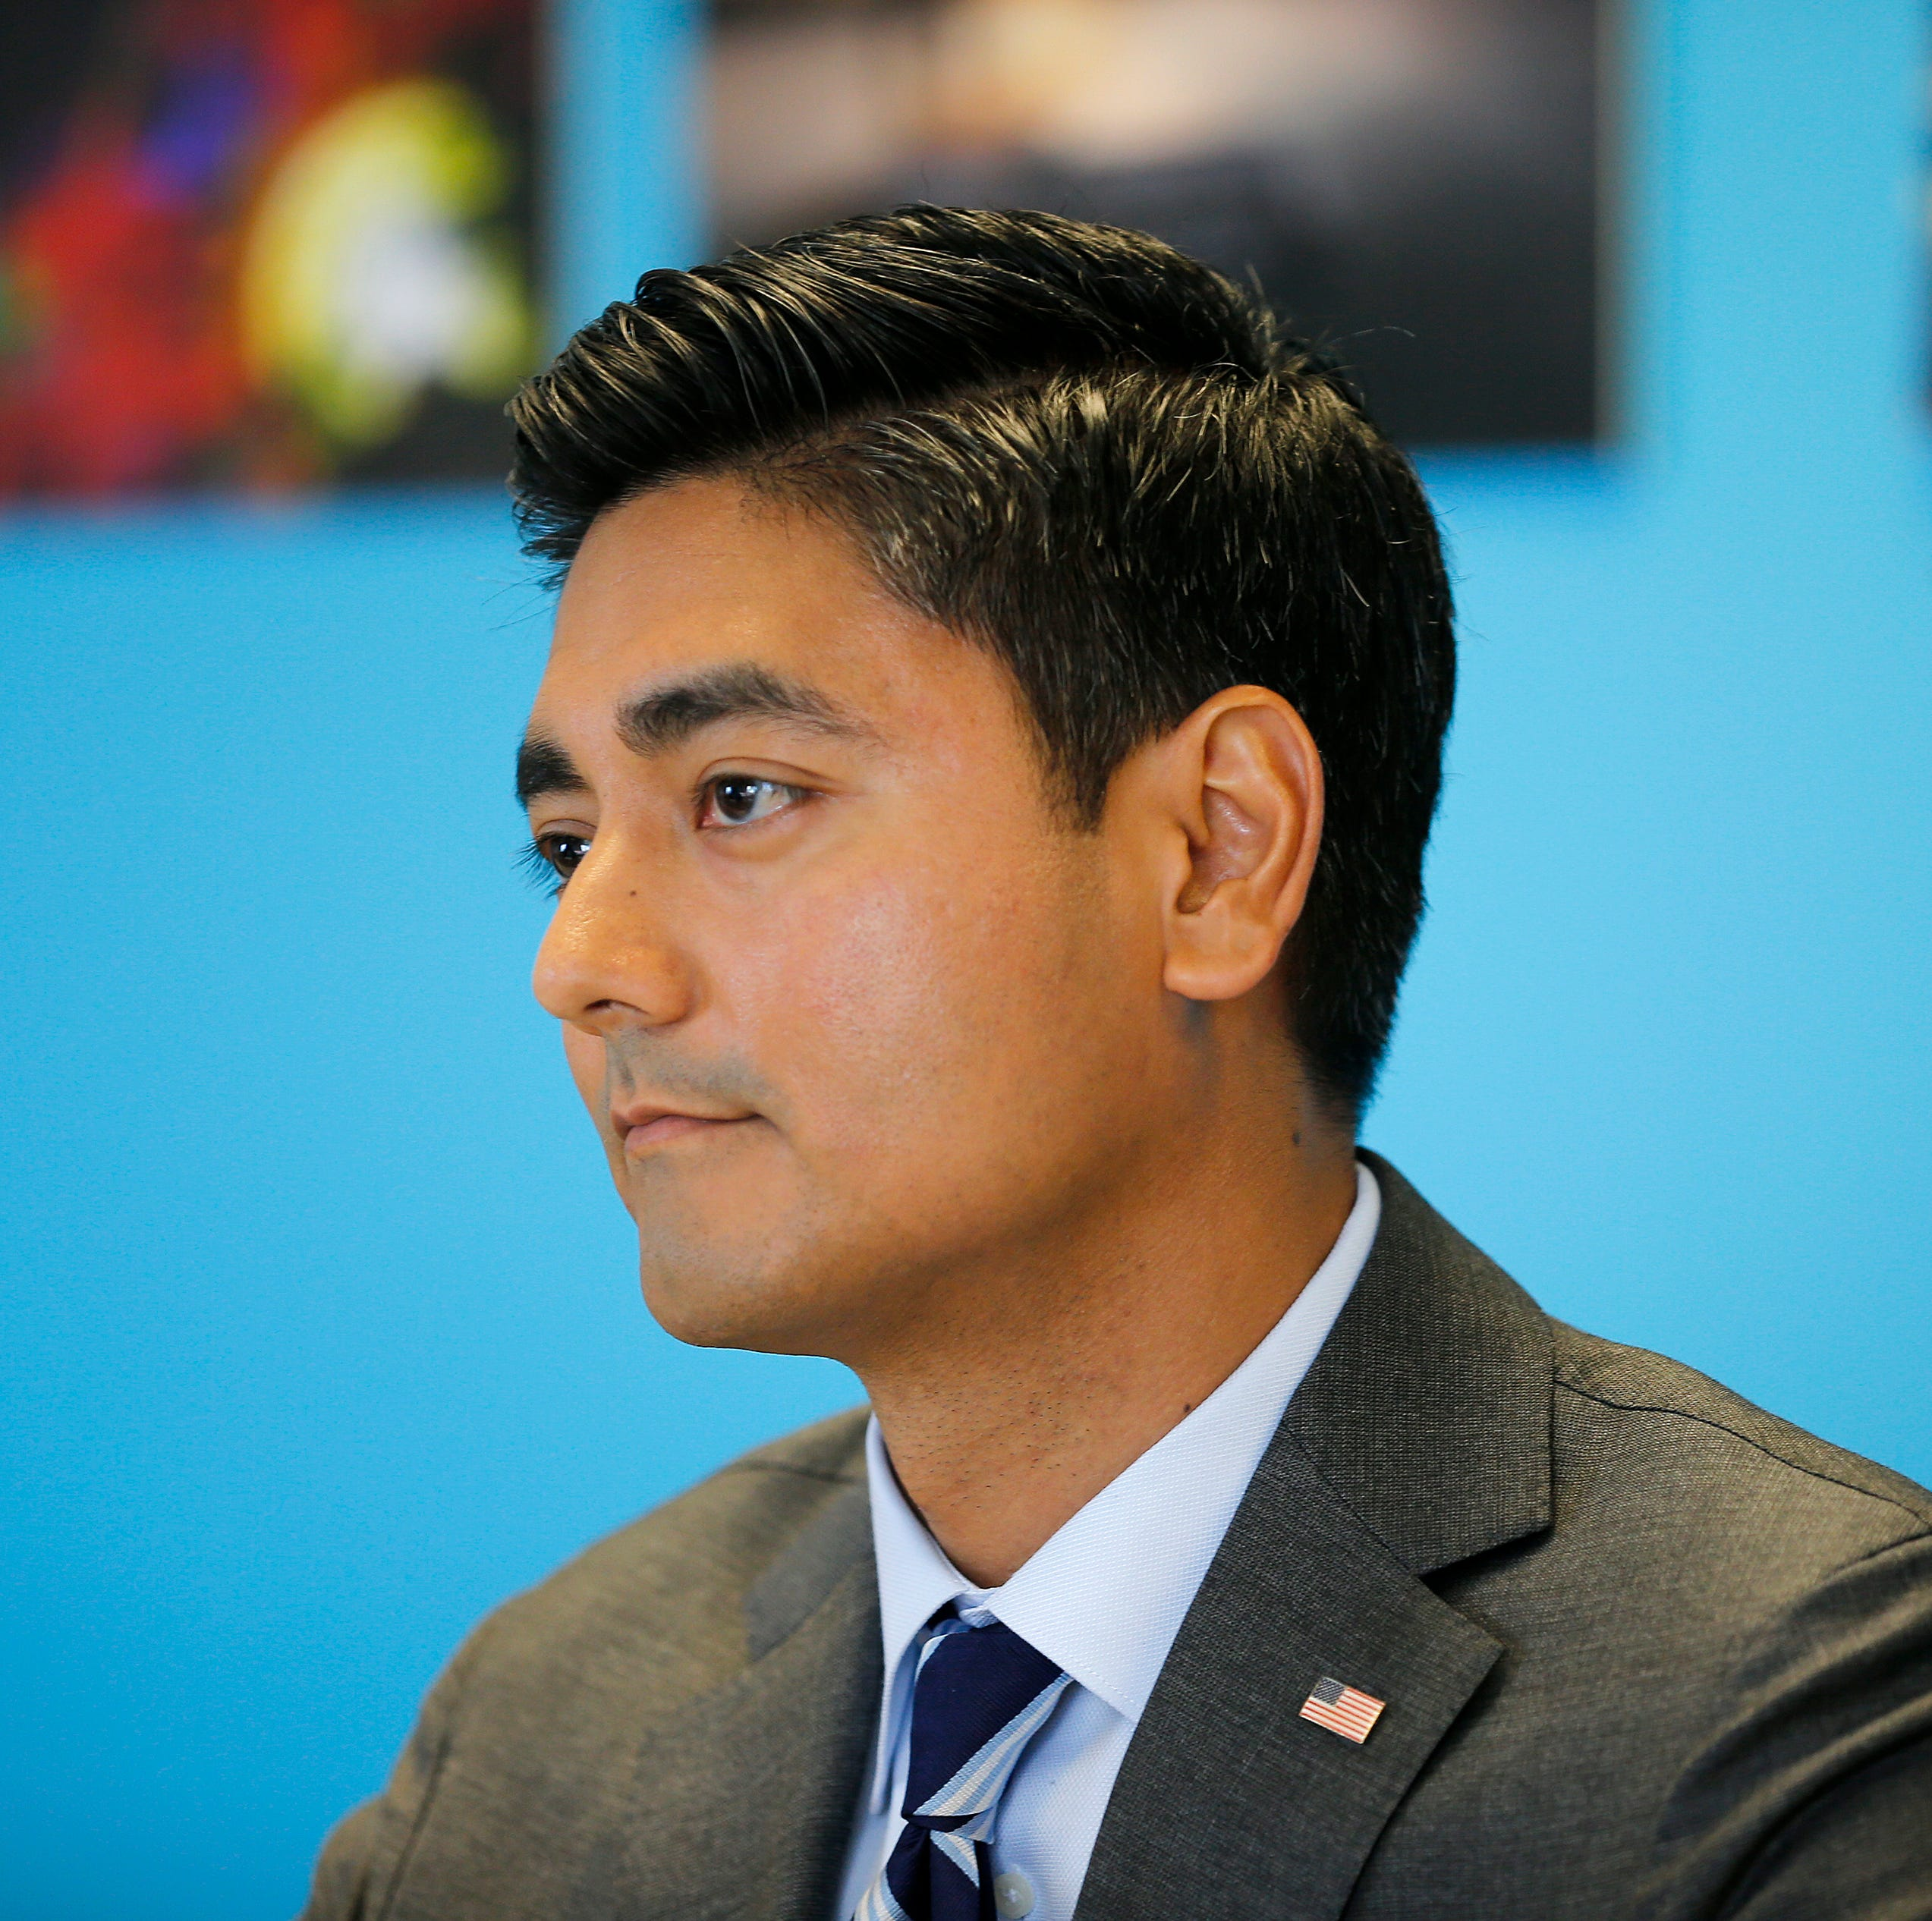 Aftab Pureval declined to criticize Trump. But he did distance himself from Nancy Pelosi.